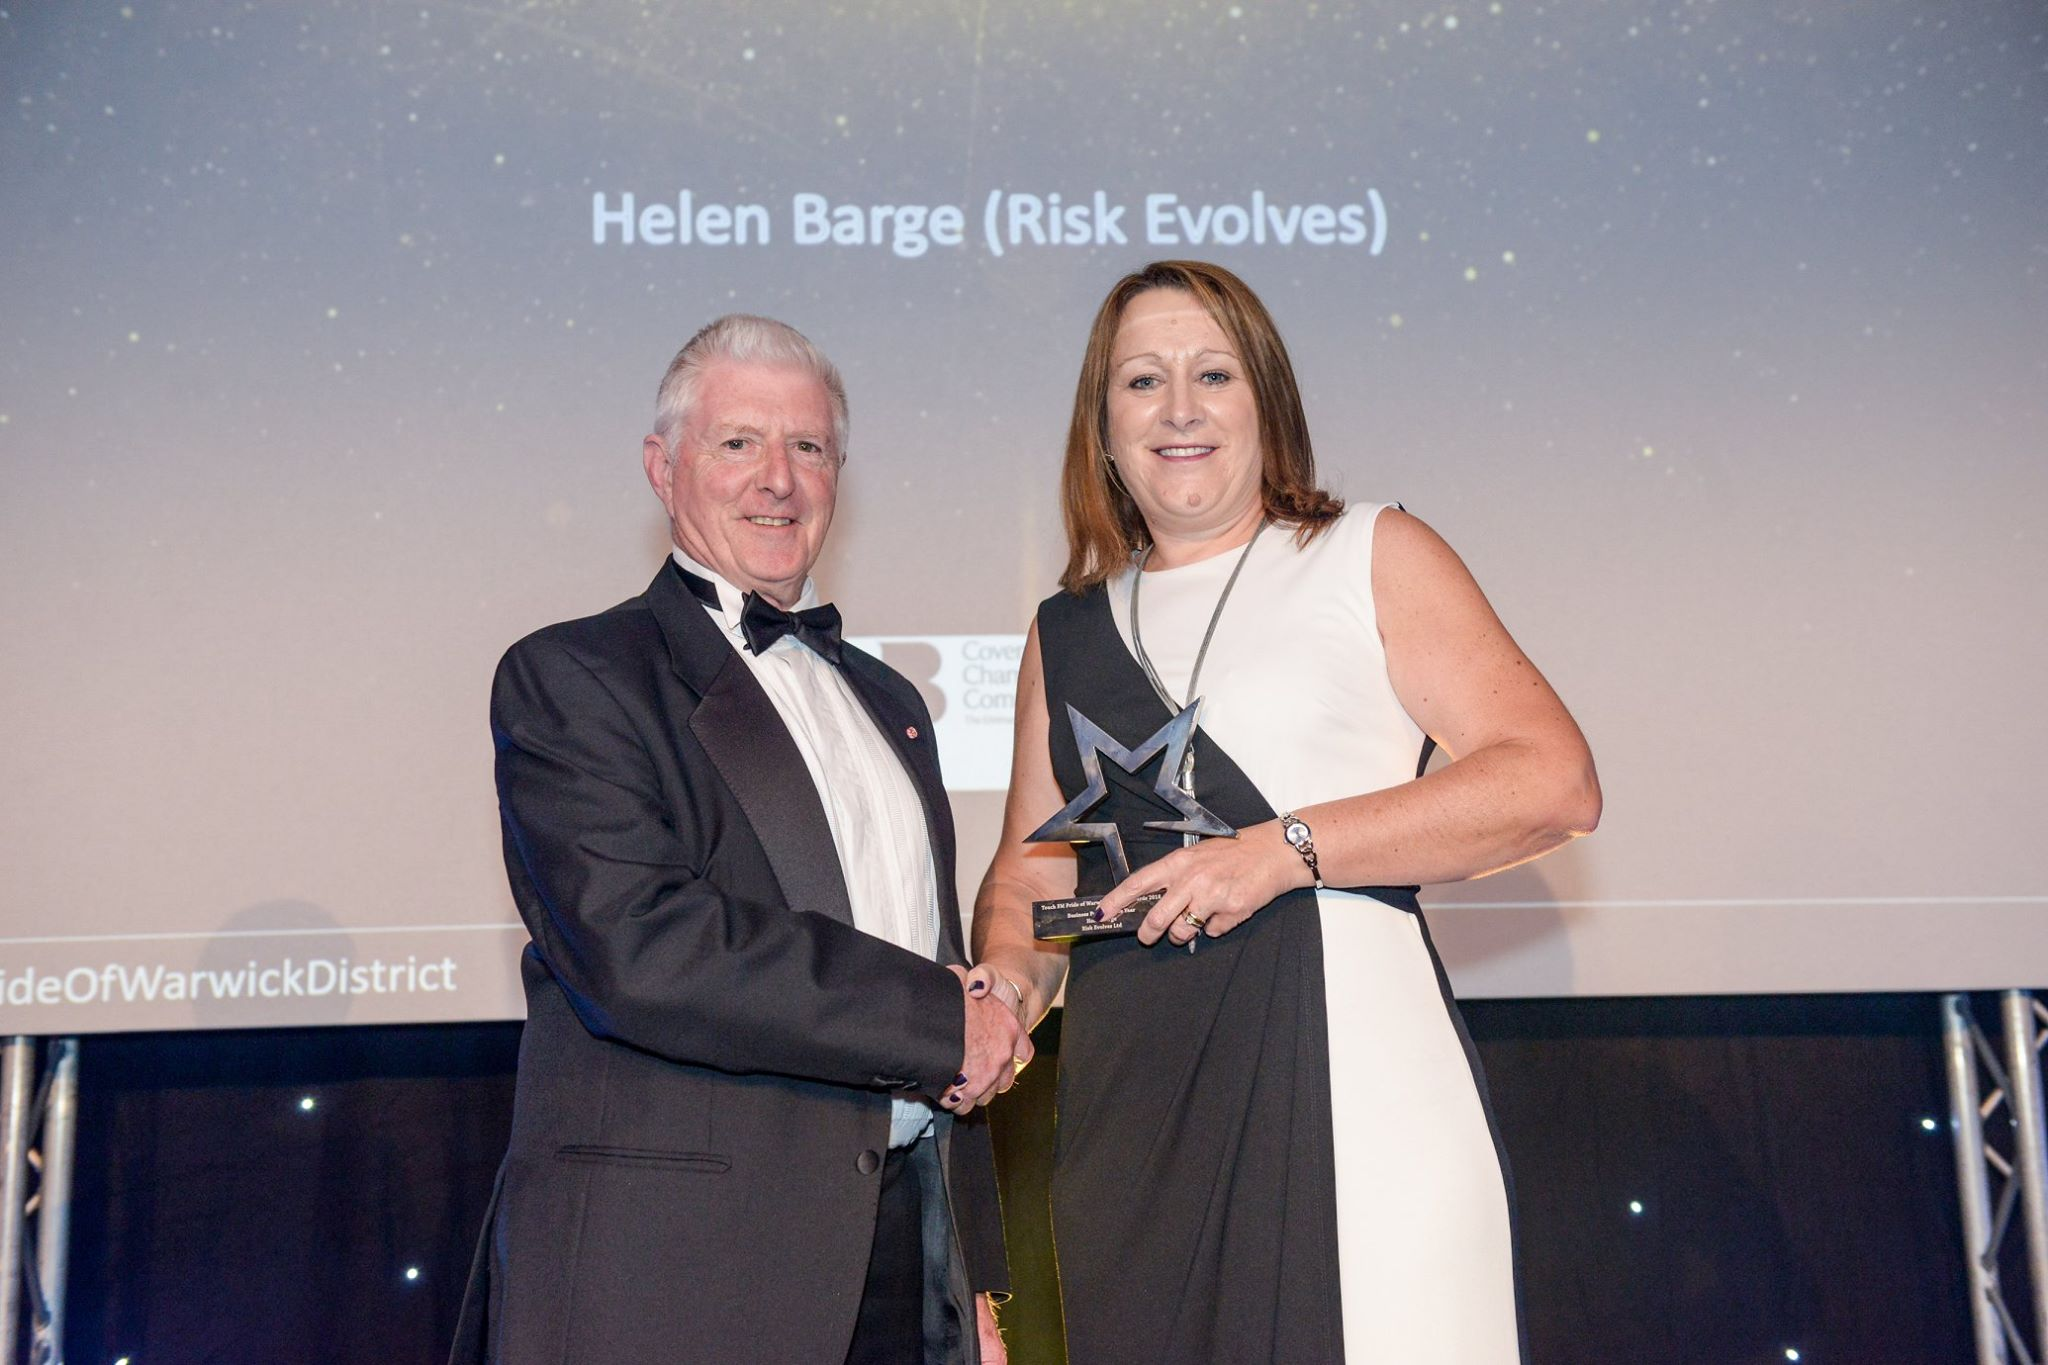 Image for Leamington Woman wins Business Person of the Year Award just three years after setting up her own risk management company